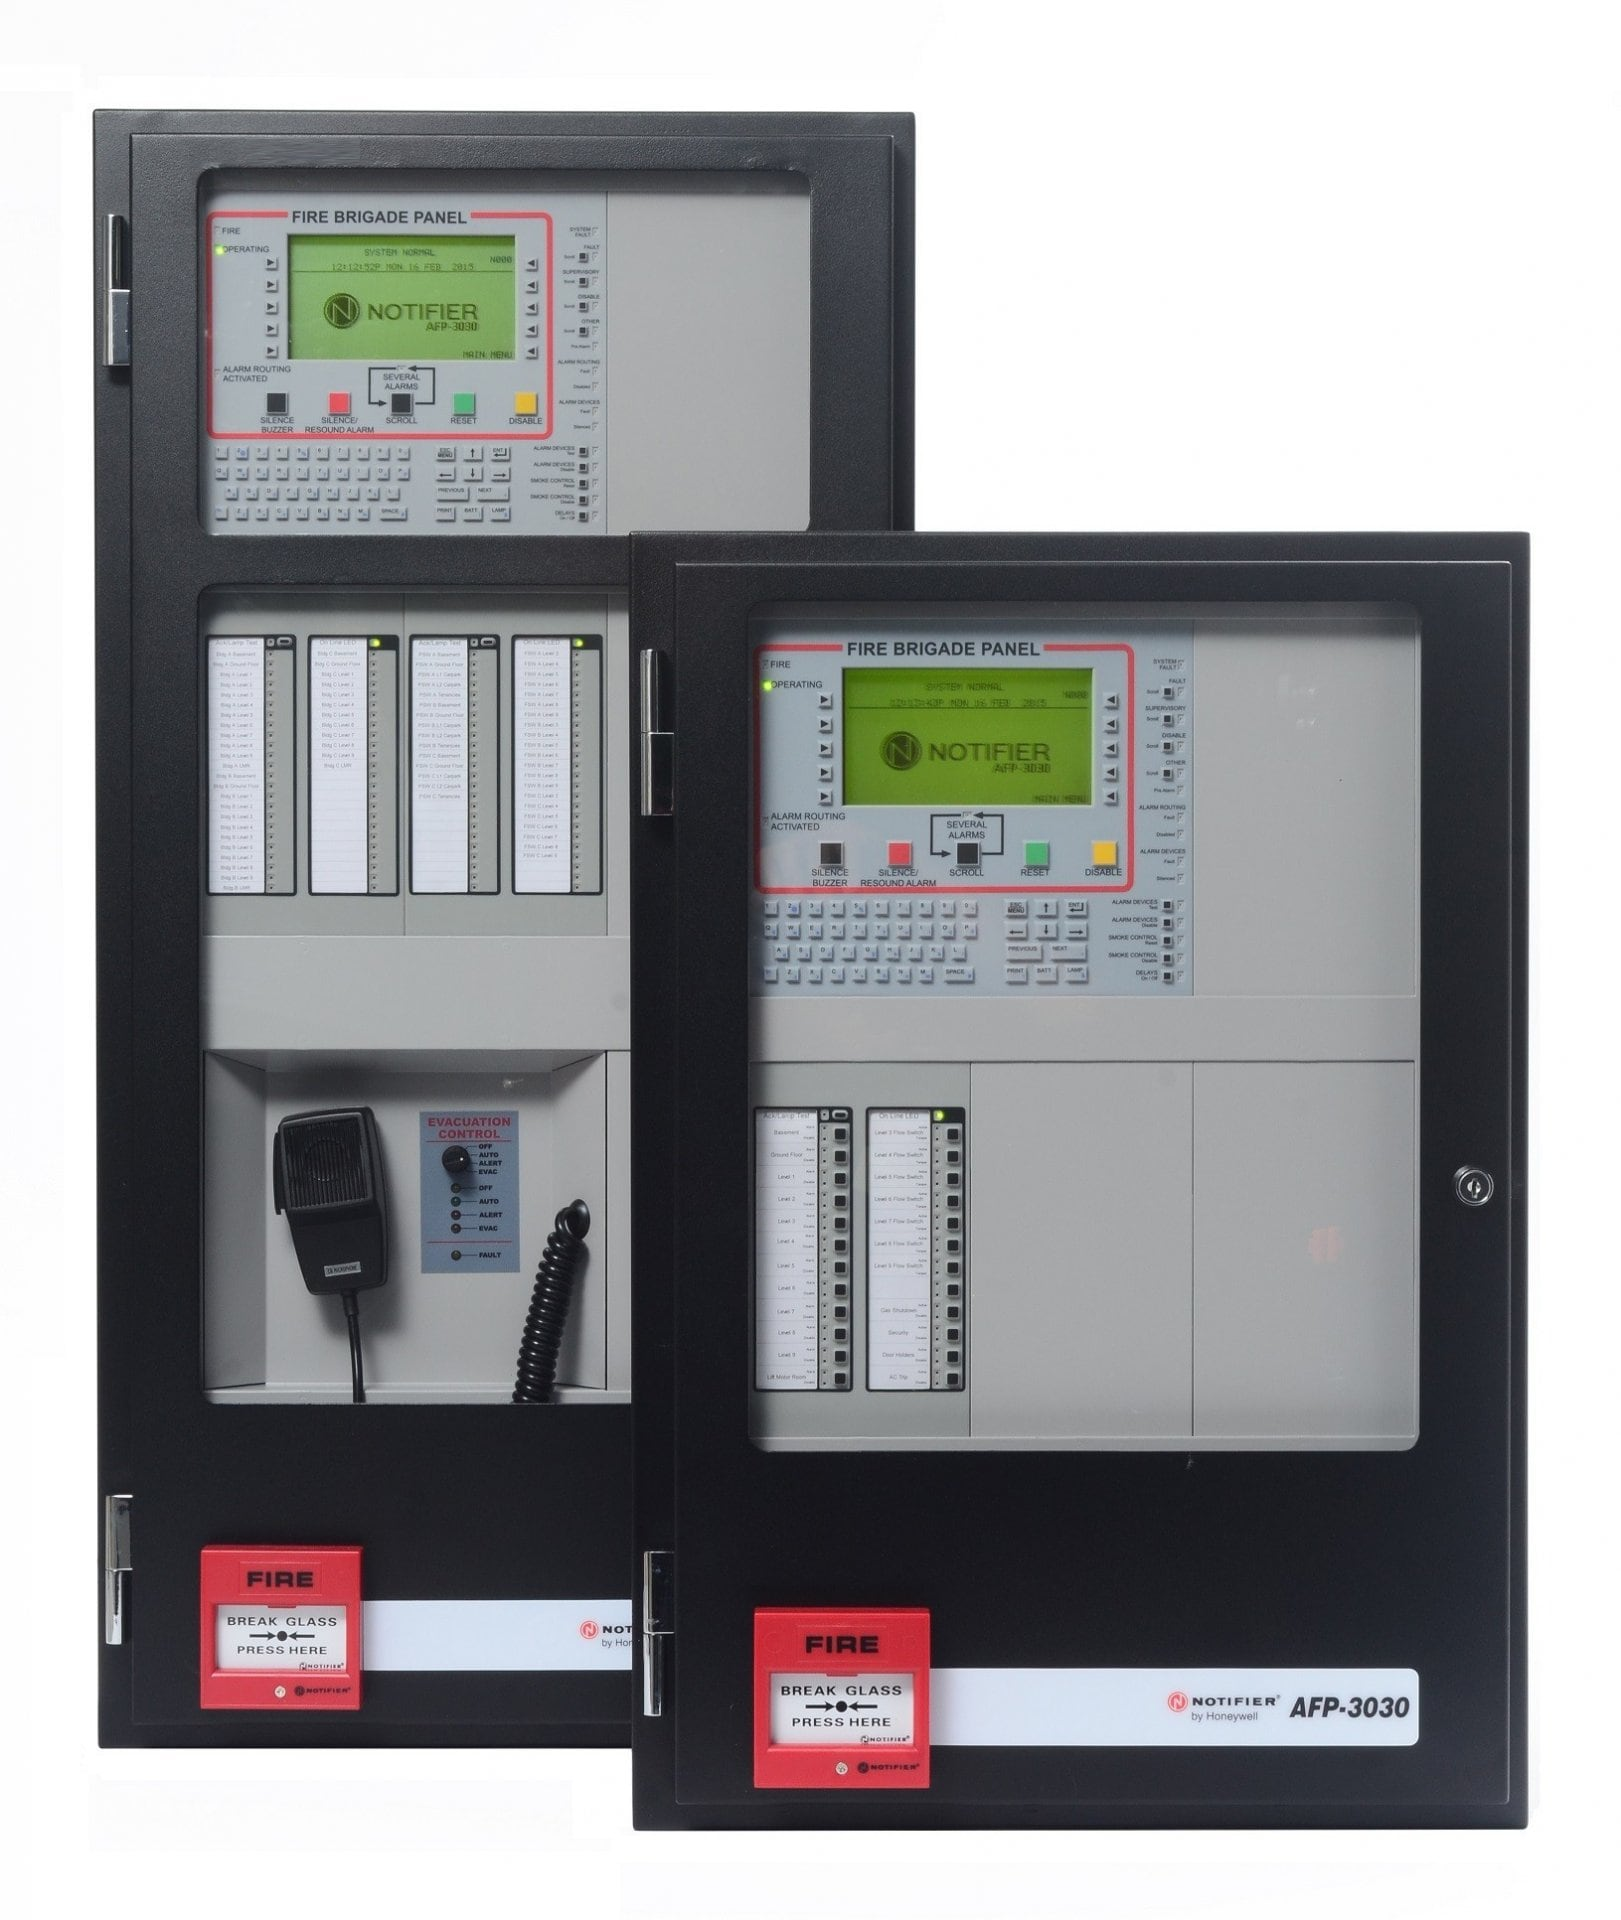 bh-4 four-in-one gas detector manual